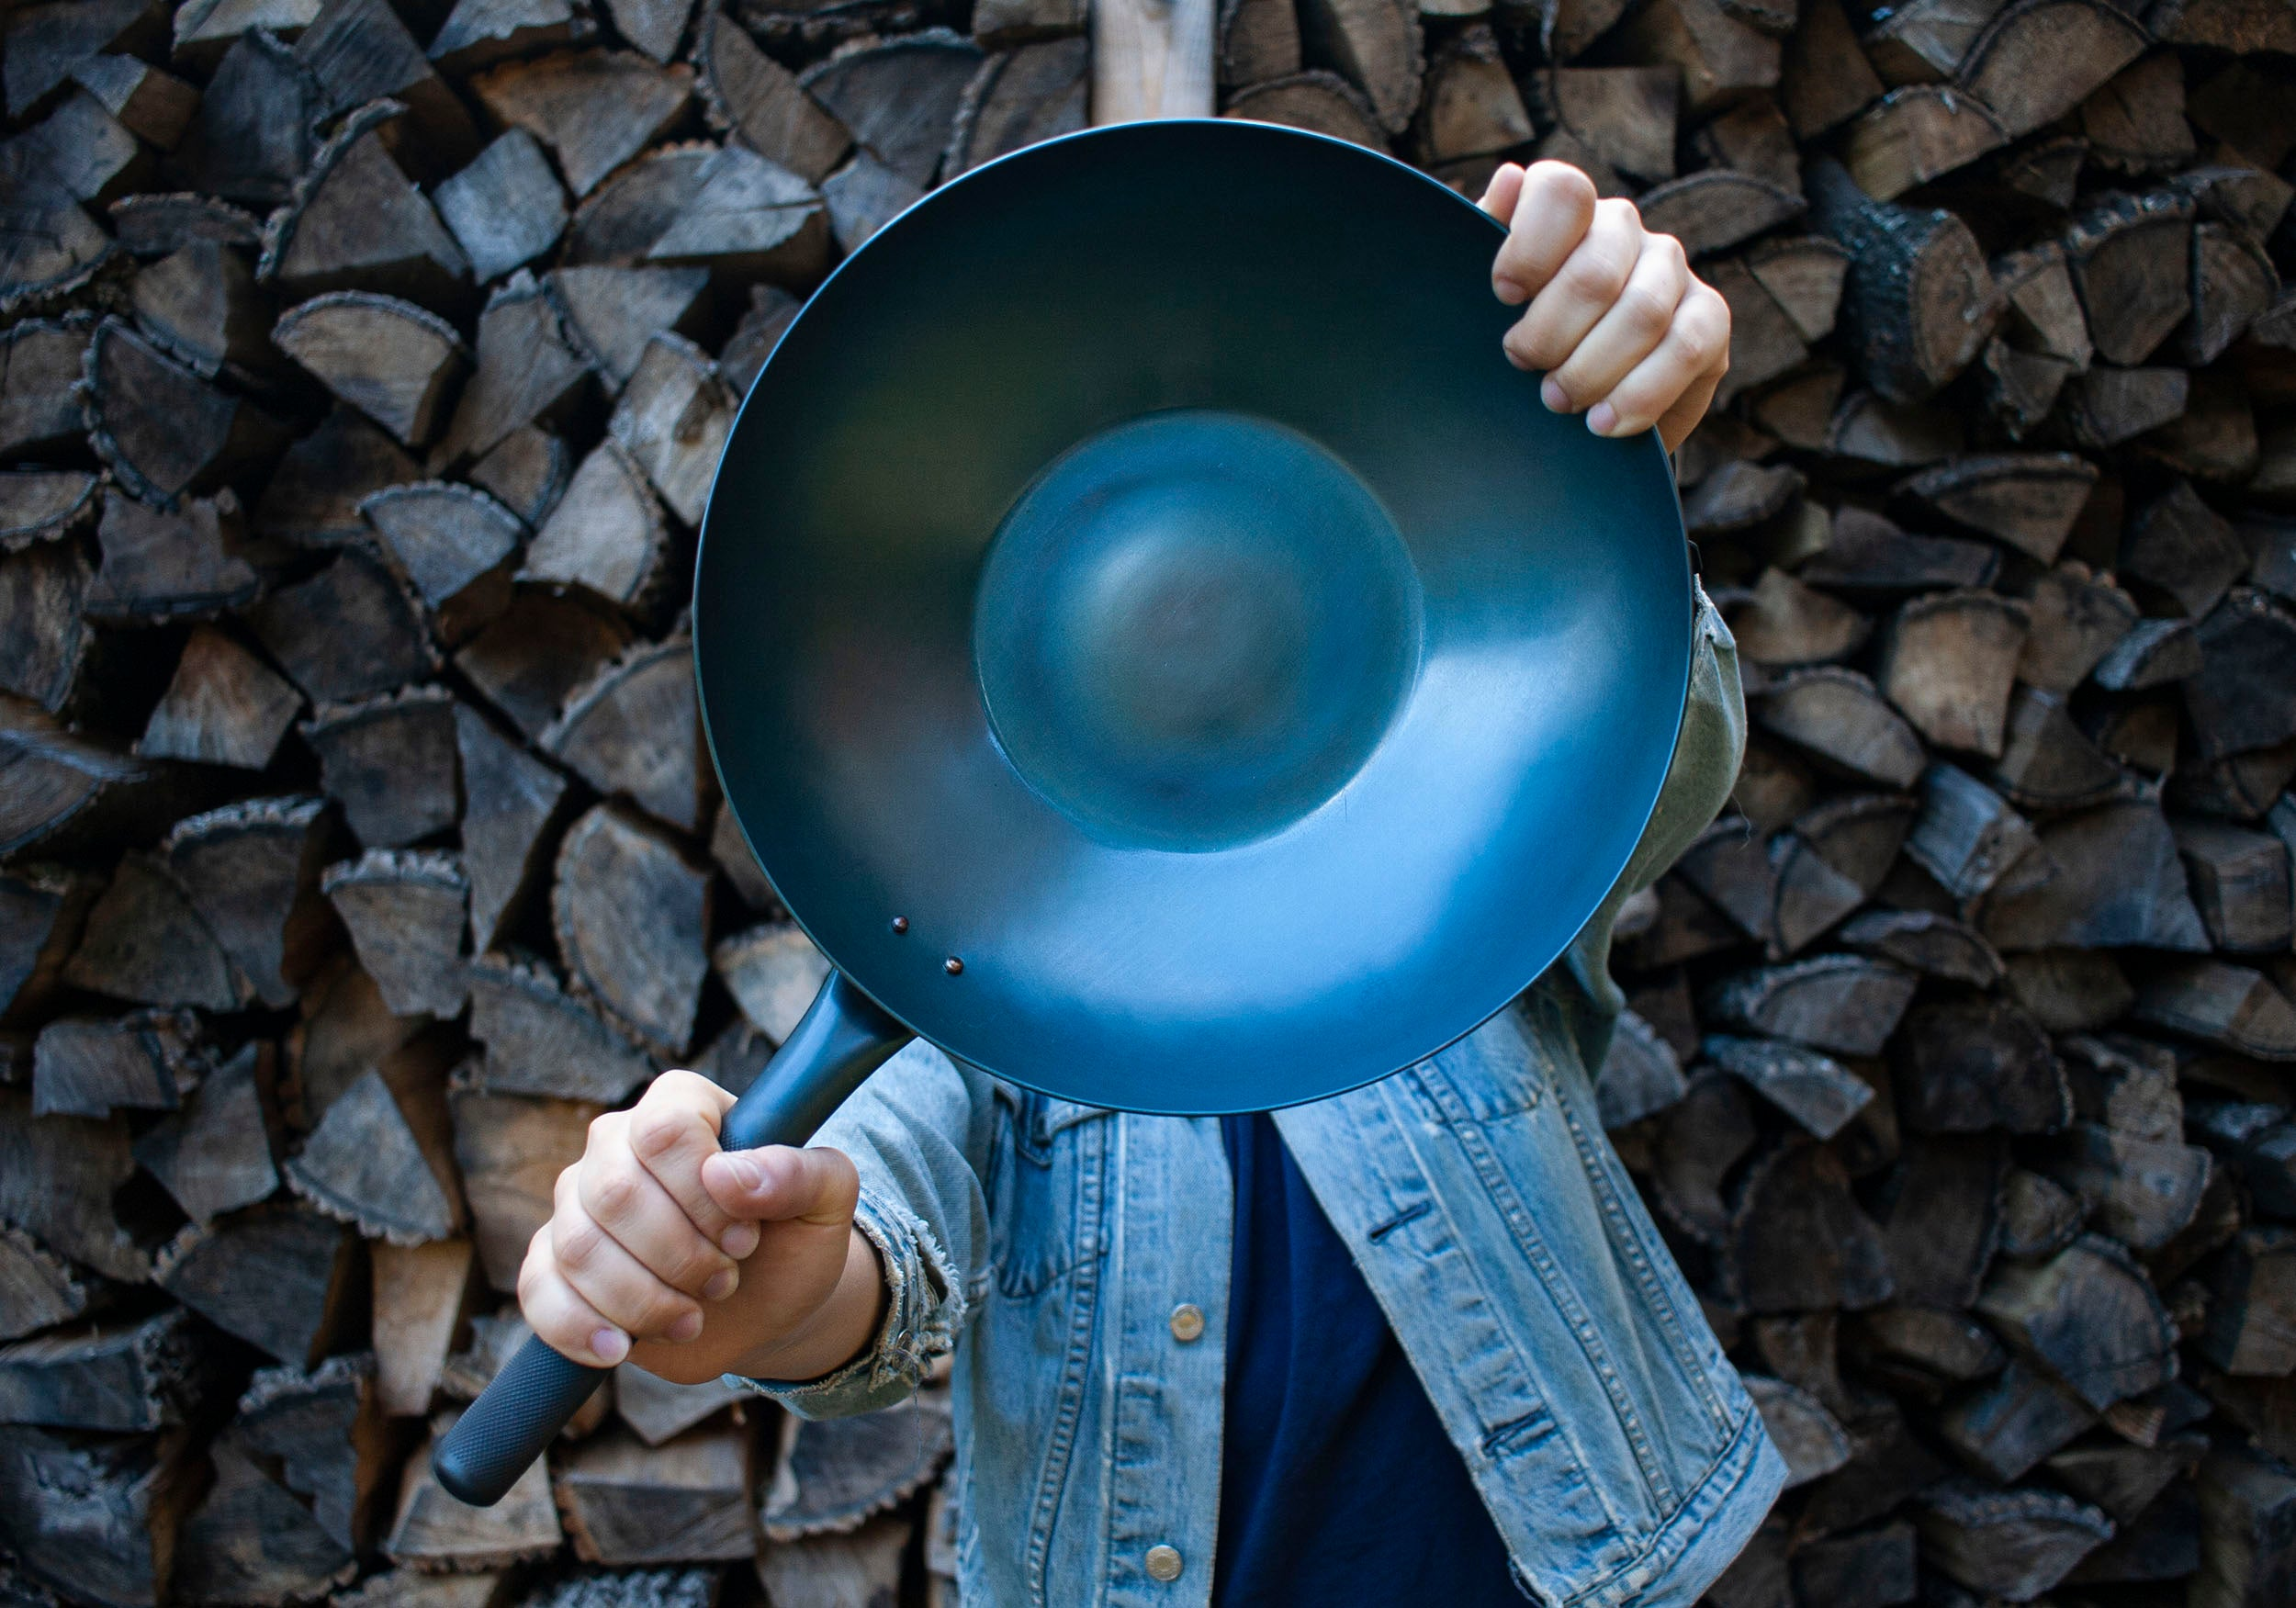 Studio Weyh is a design studio that offers beautiful handmade cookware and metal fabrication services in the Winston-Salem Greensboro North Carolina area.